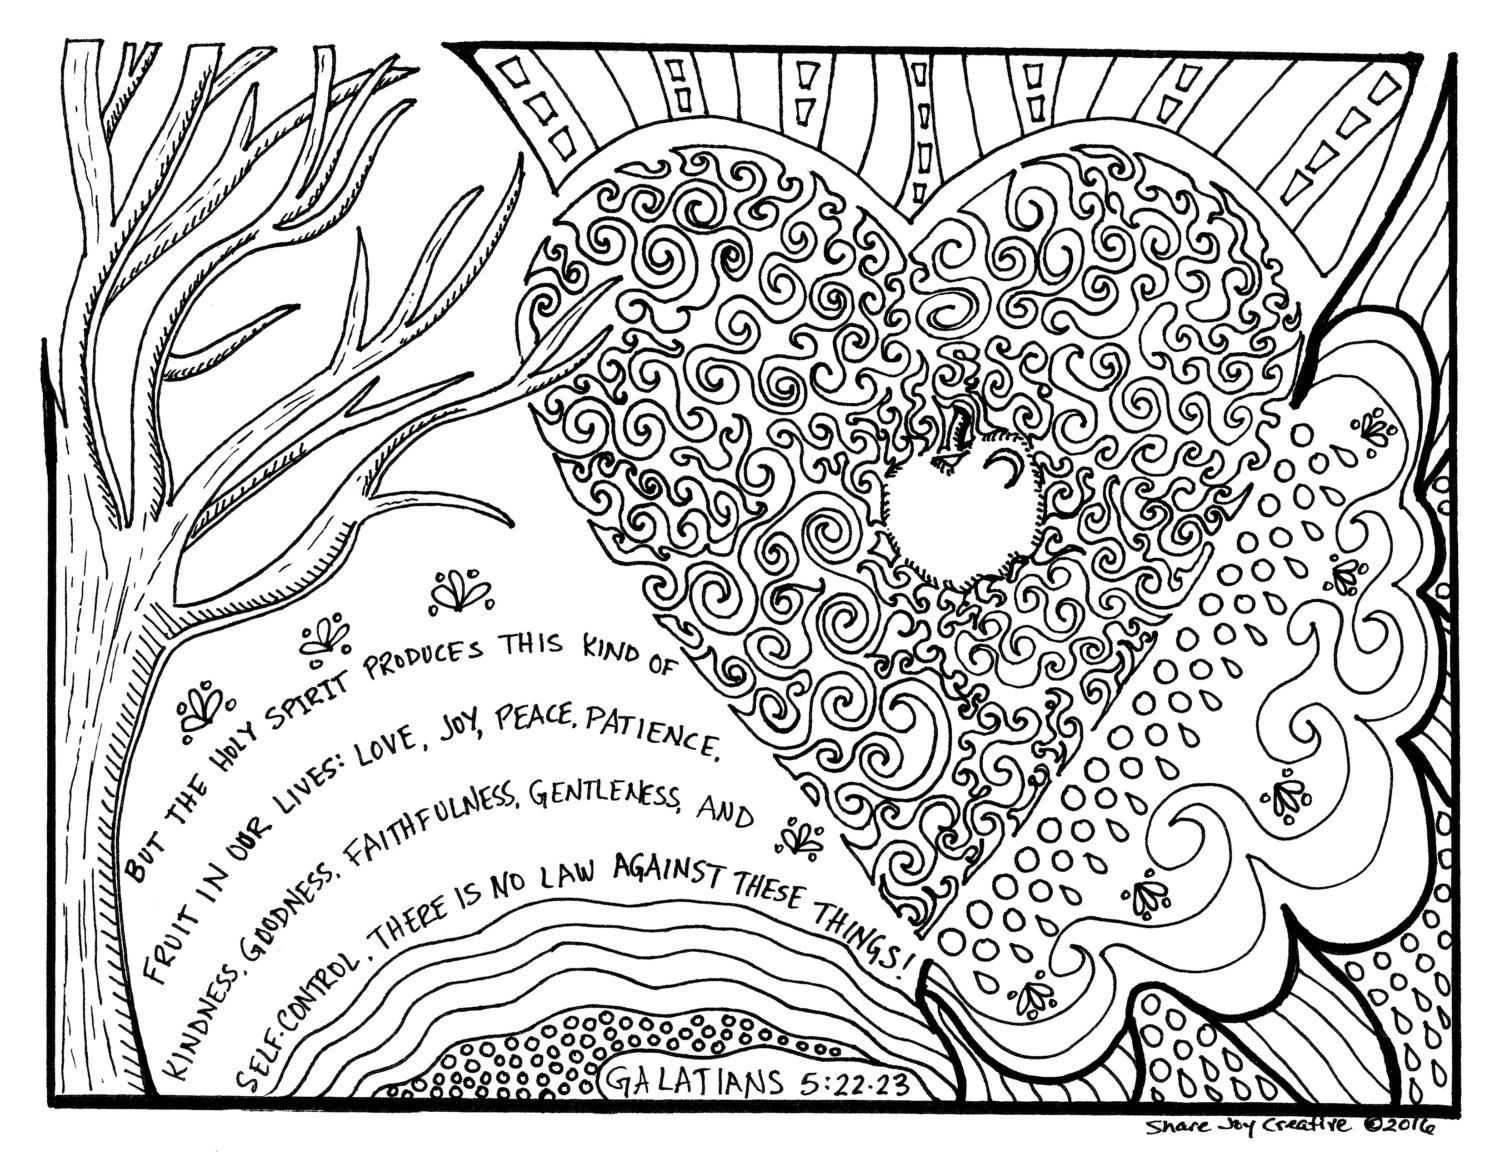 The Fruit Of The Holy Spirit Coloring Page By Sharejoycreative On